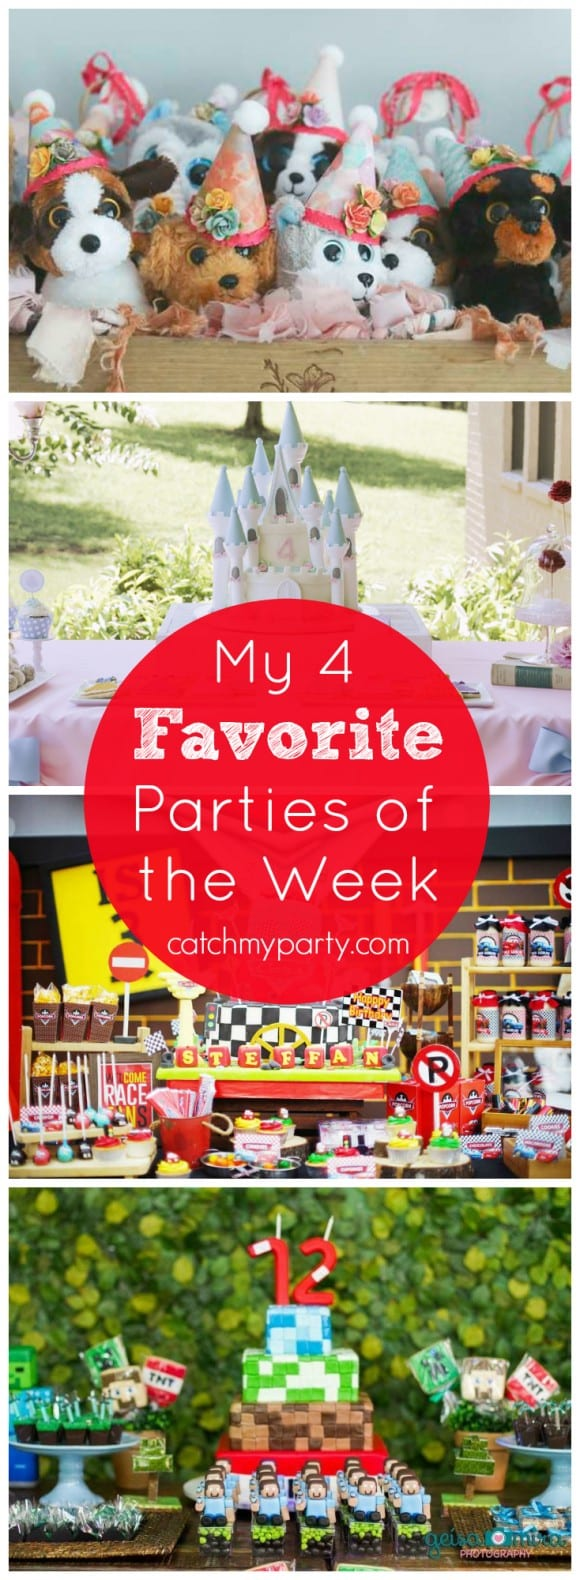 My Favorite Parties of the Week include an puppy birthday party, a princess party, a Disney Cars party, and a Minecraft party! | CatchMyParty.com